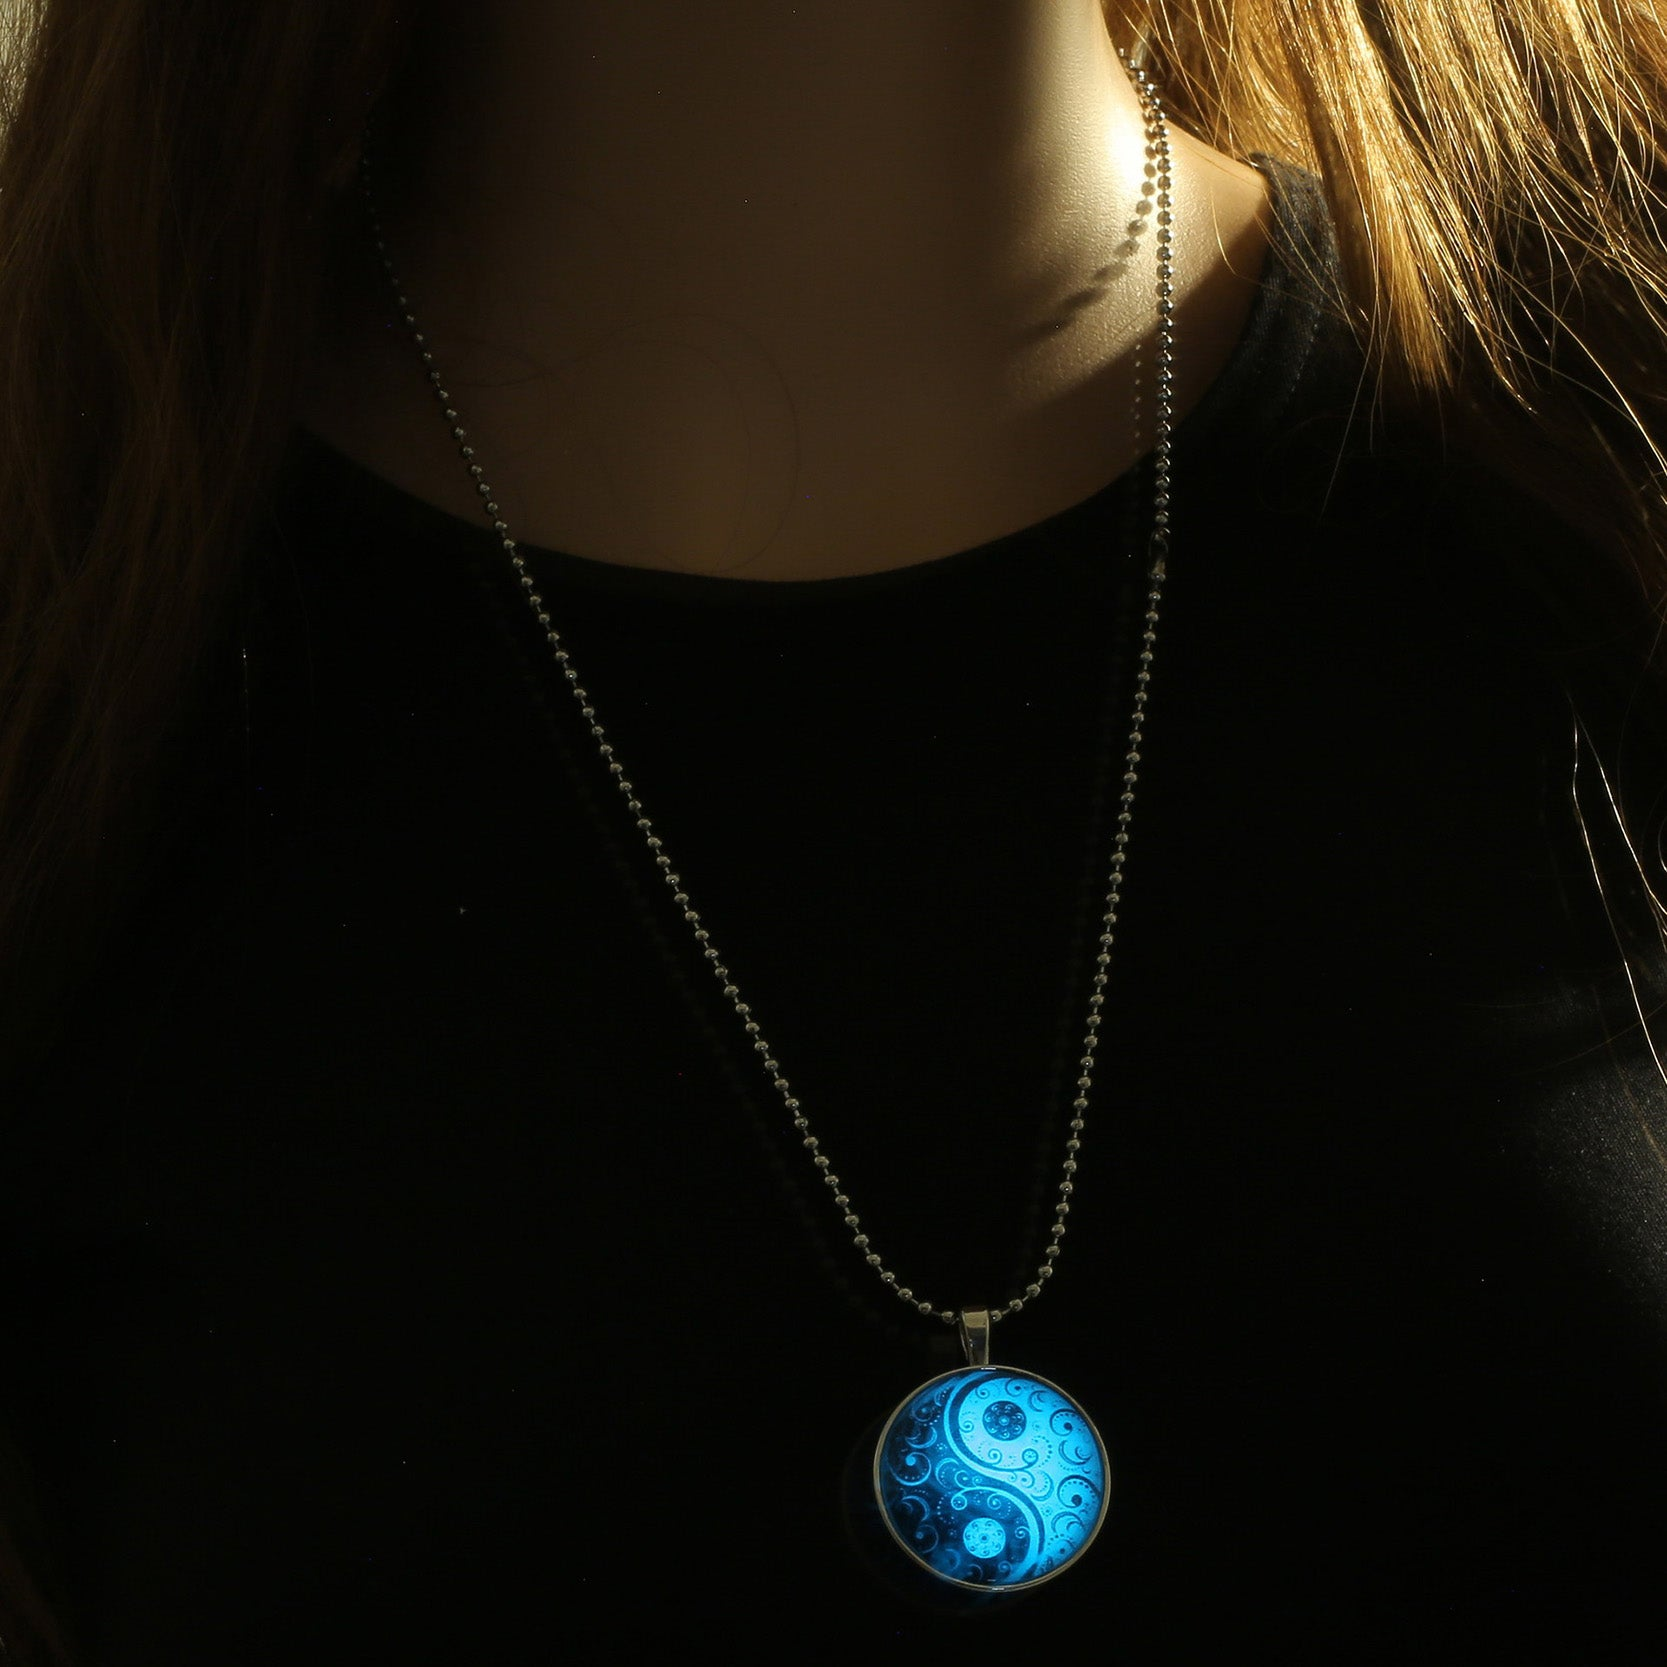 Luminous Tai-Chi Pendant - 75% OFF - The Creative Booth